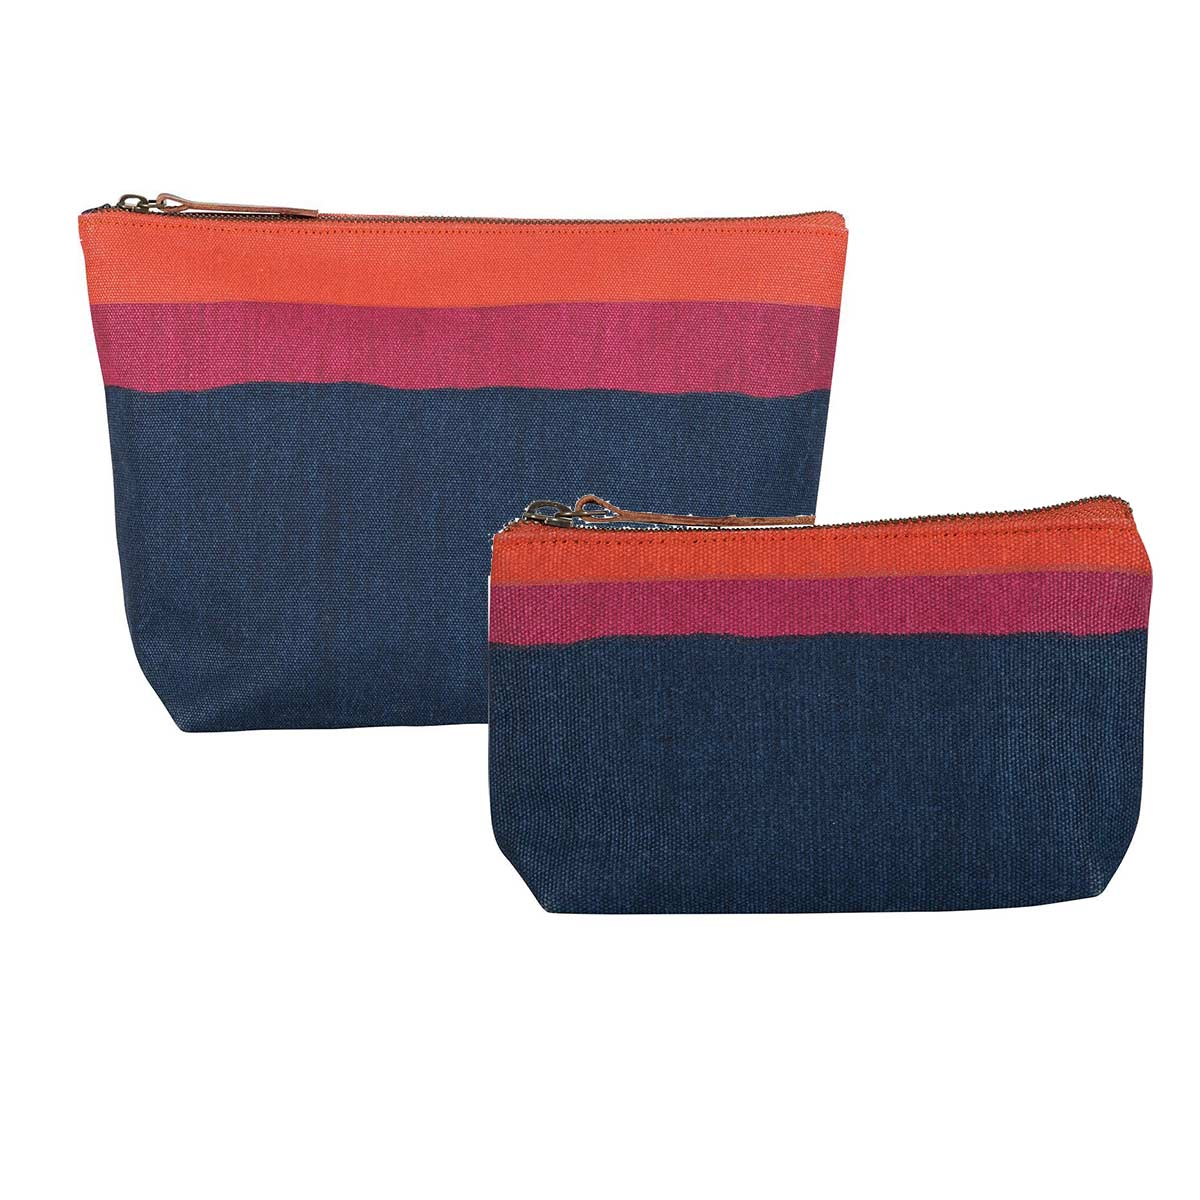 relaxed canvas pouches in red, orange, and navy blue stripe